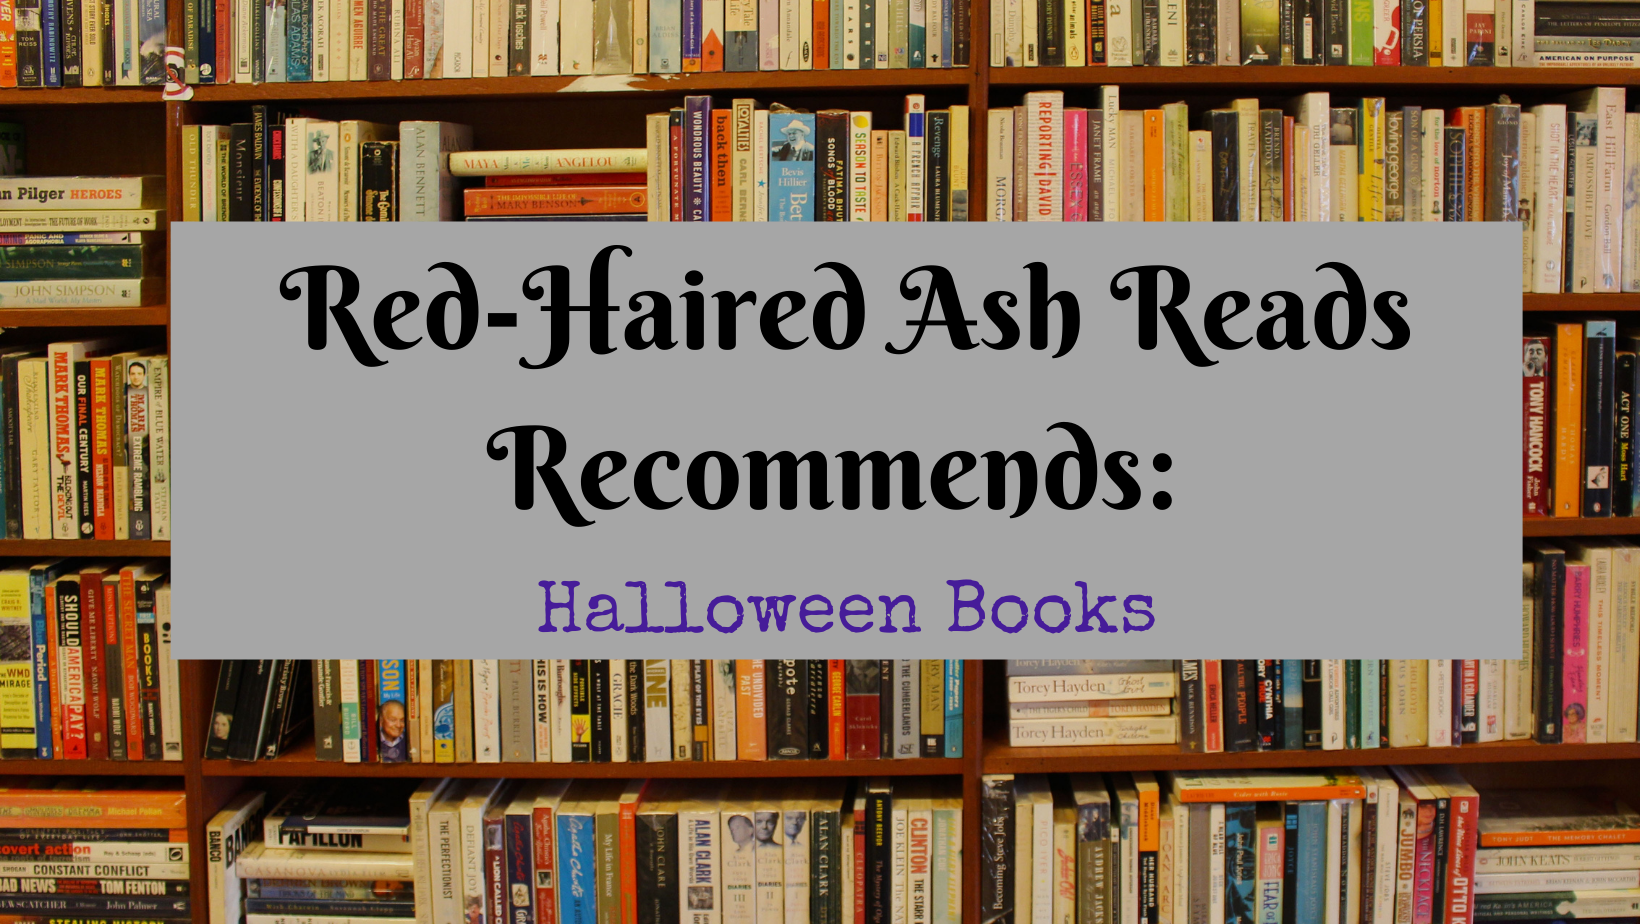 Red-Haired Ash Reads Recommends Halloween Books